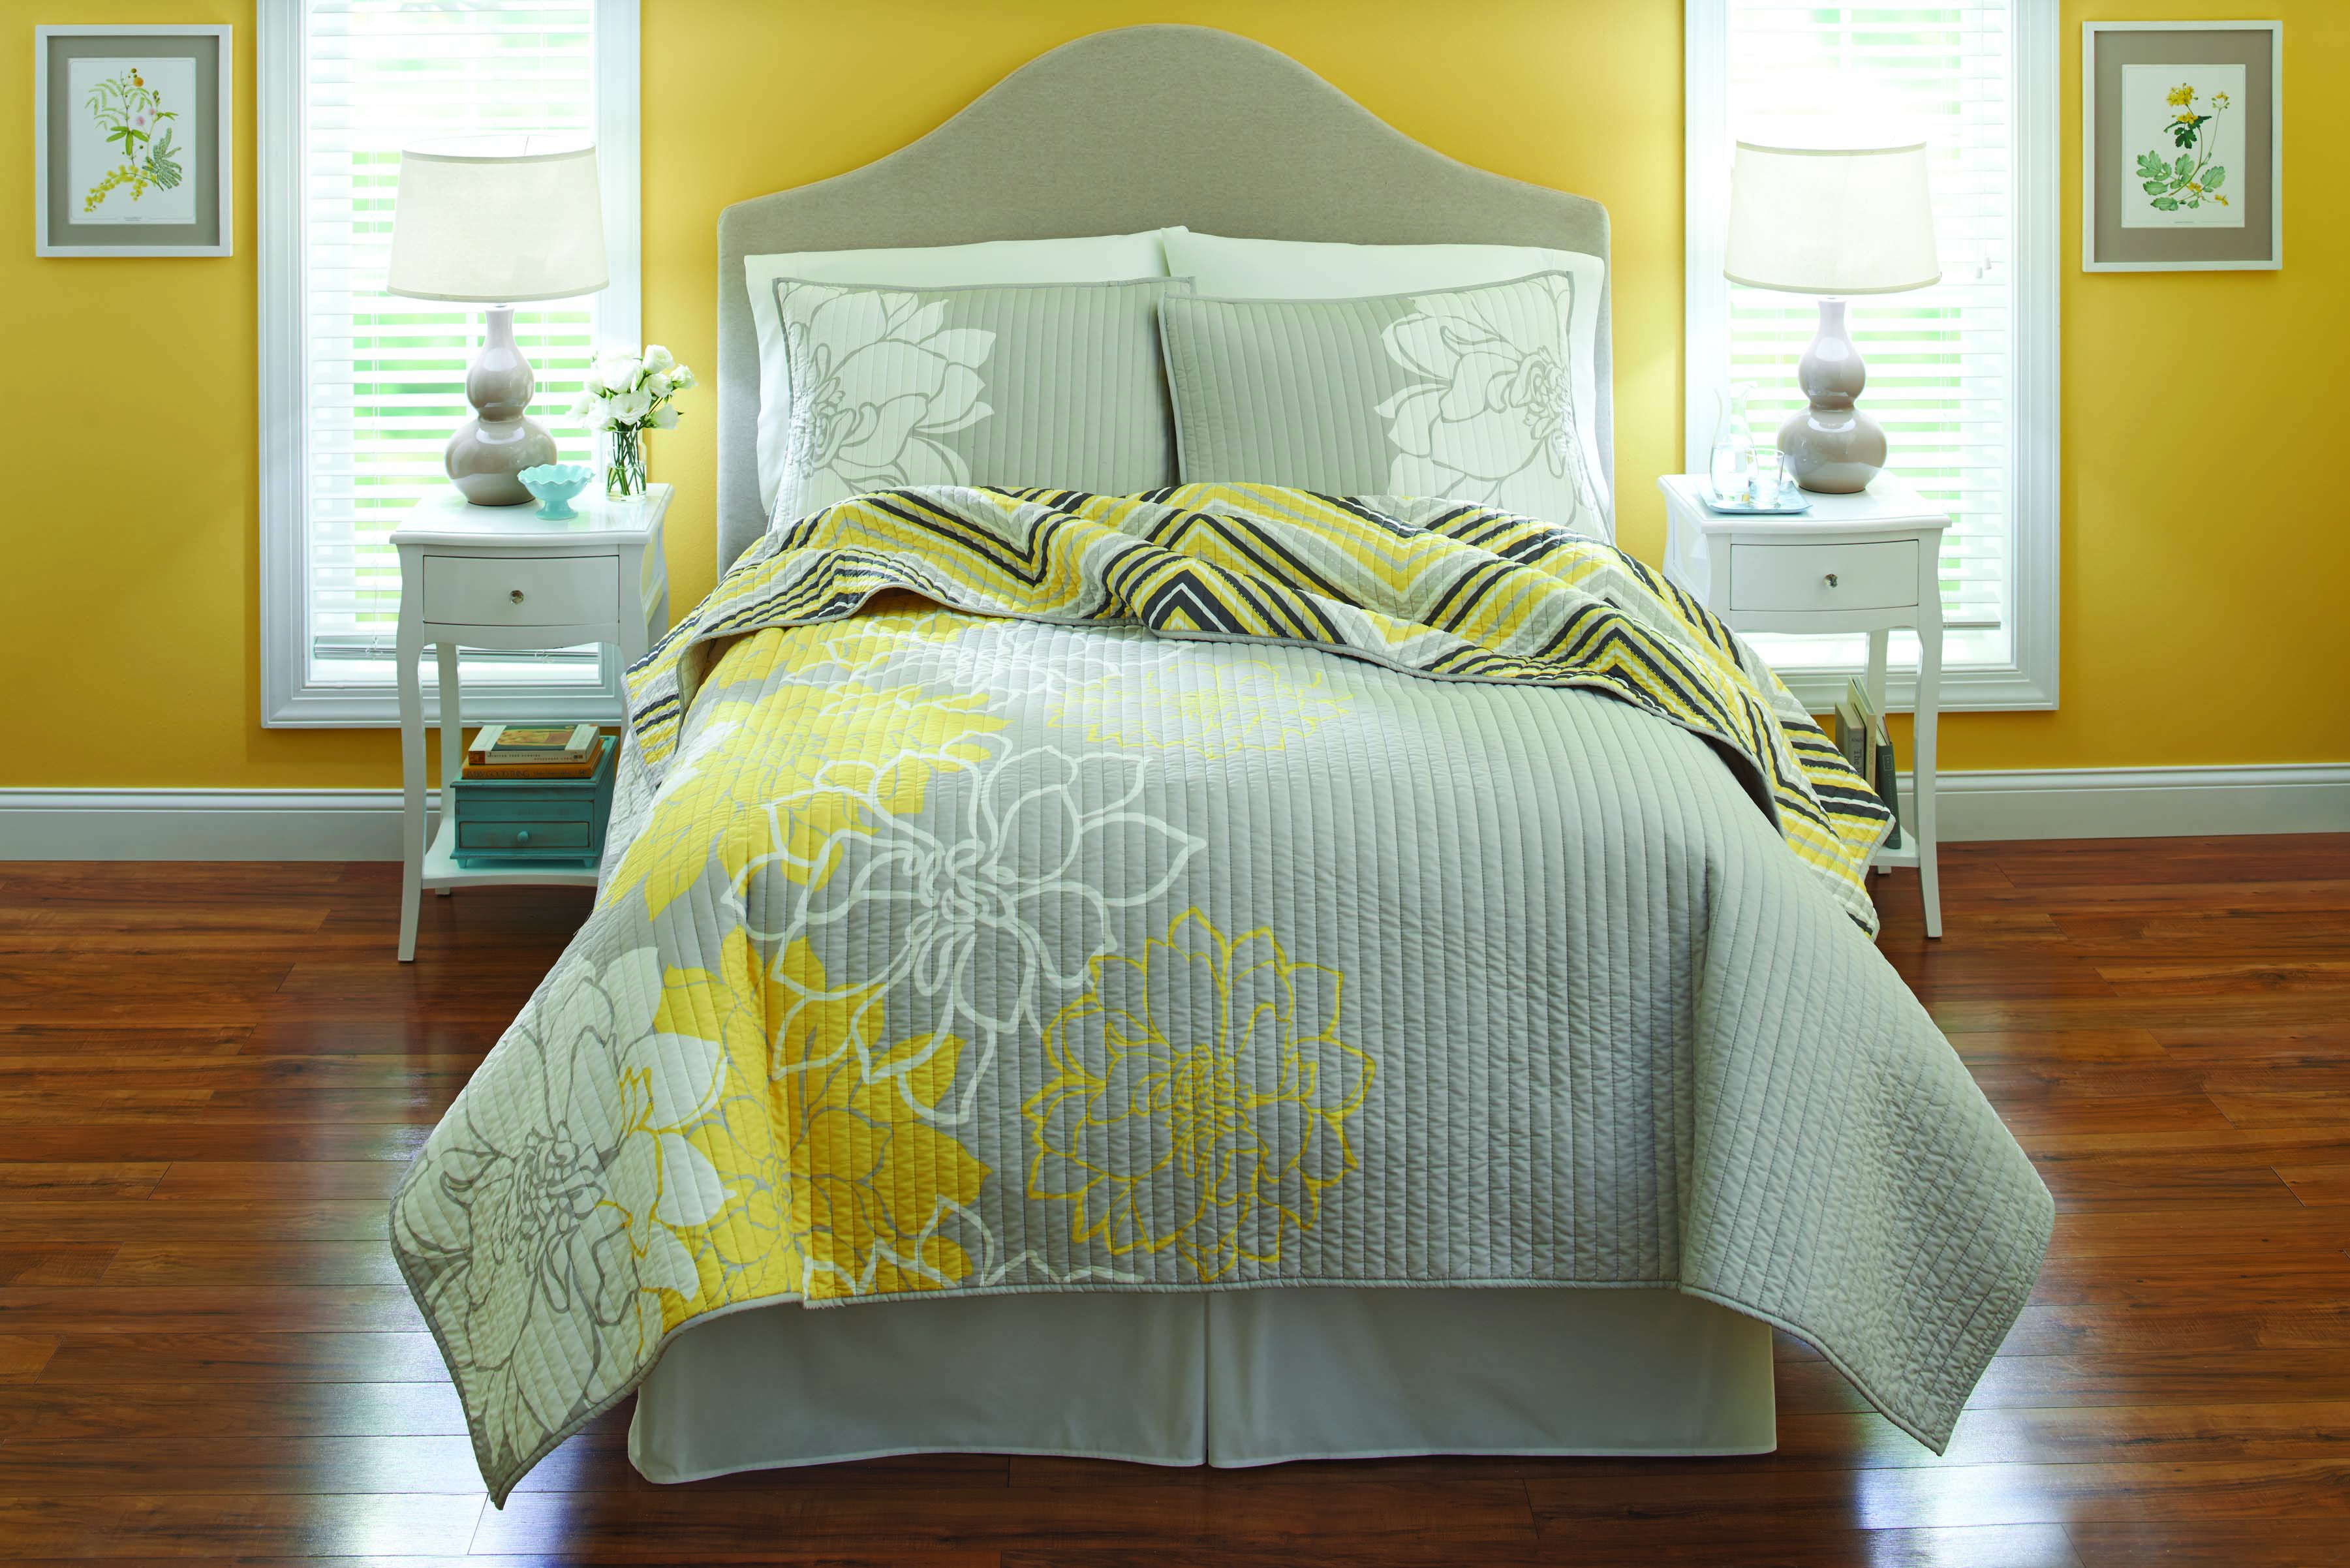 Update Your Bedroom With This Better Homes And Gardens Yellow